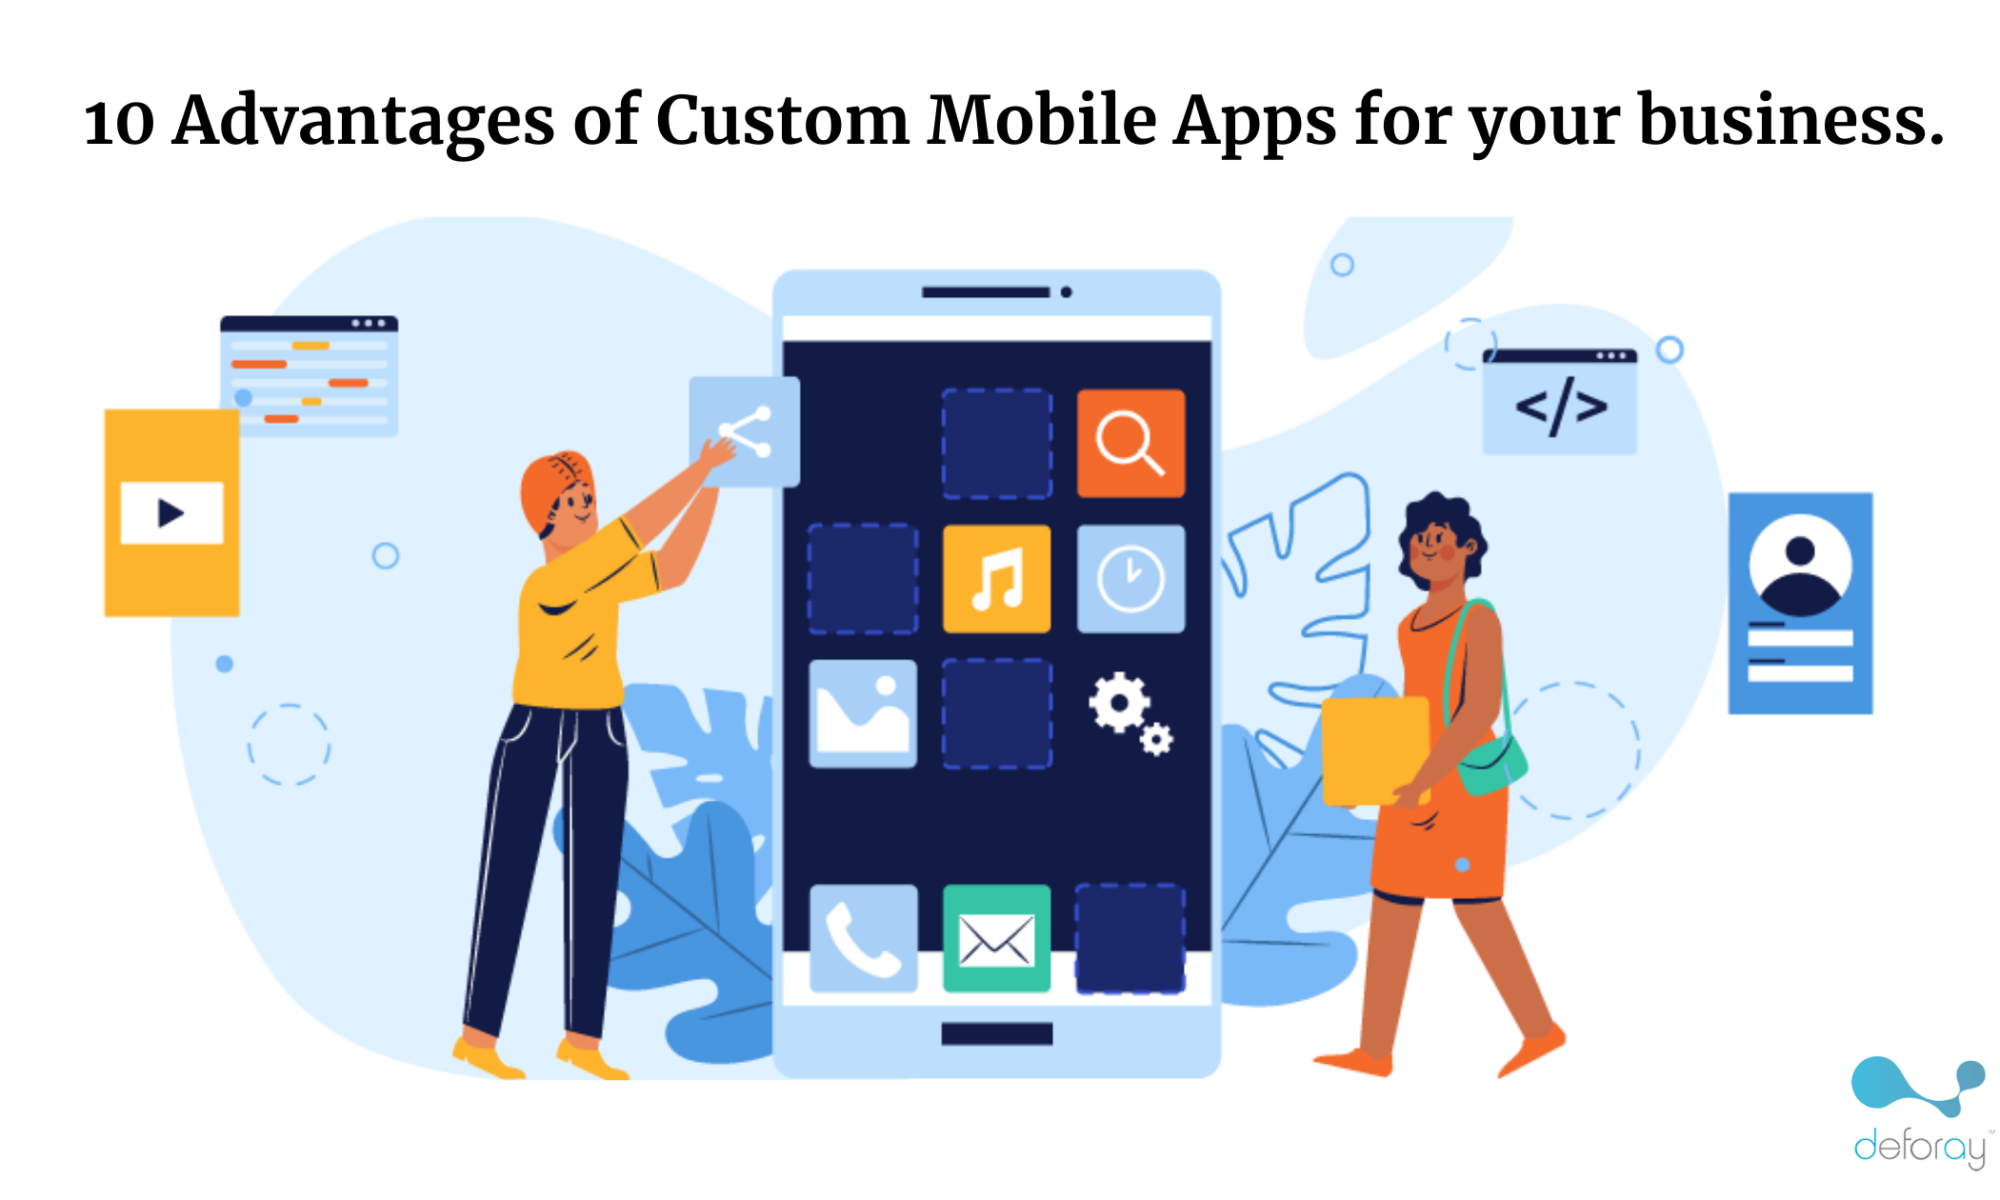 Benefits of Custom Mobile Apps